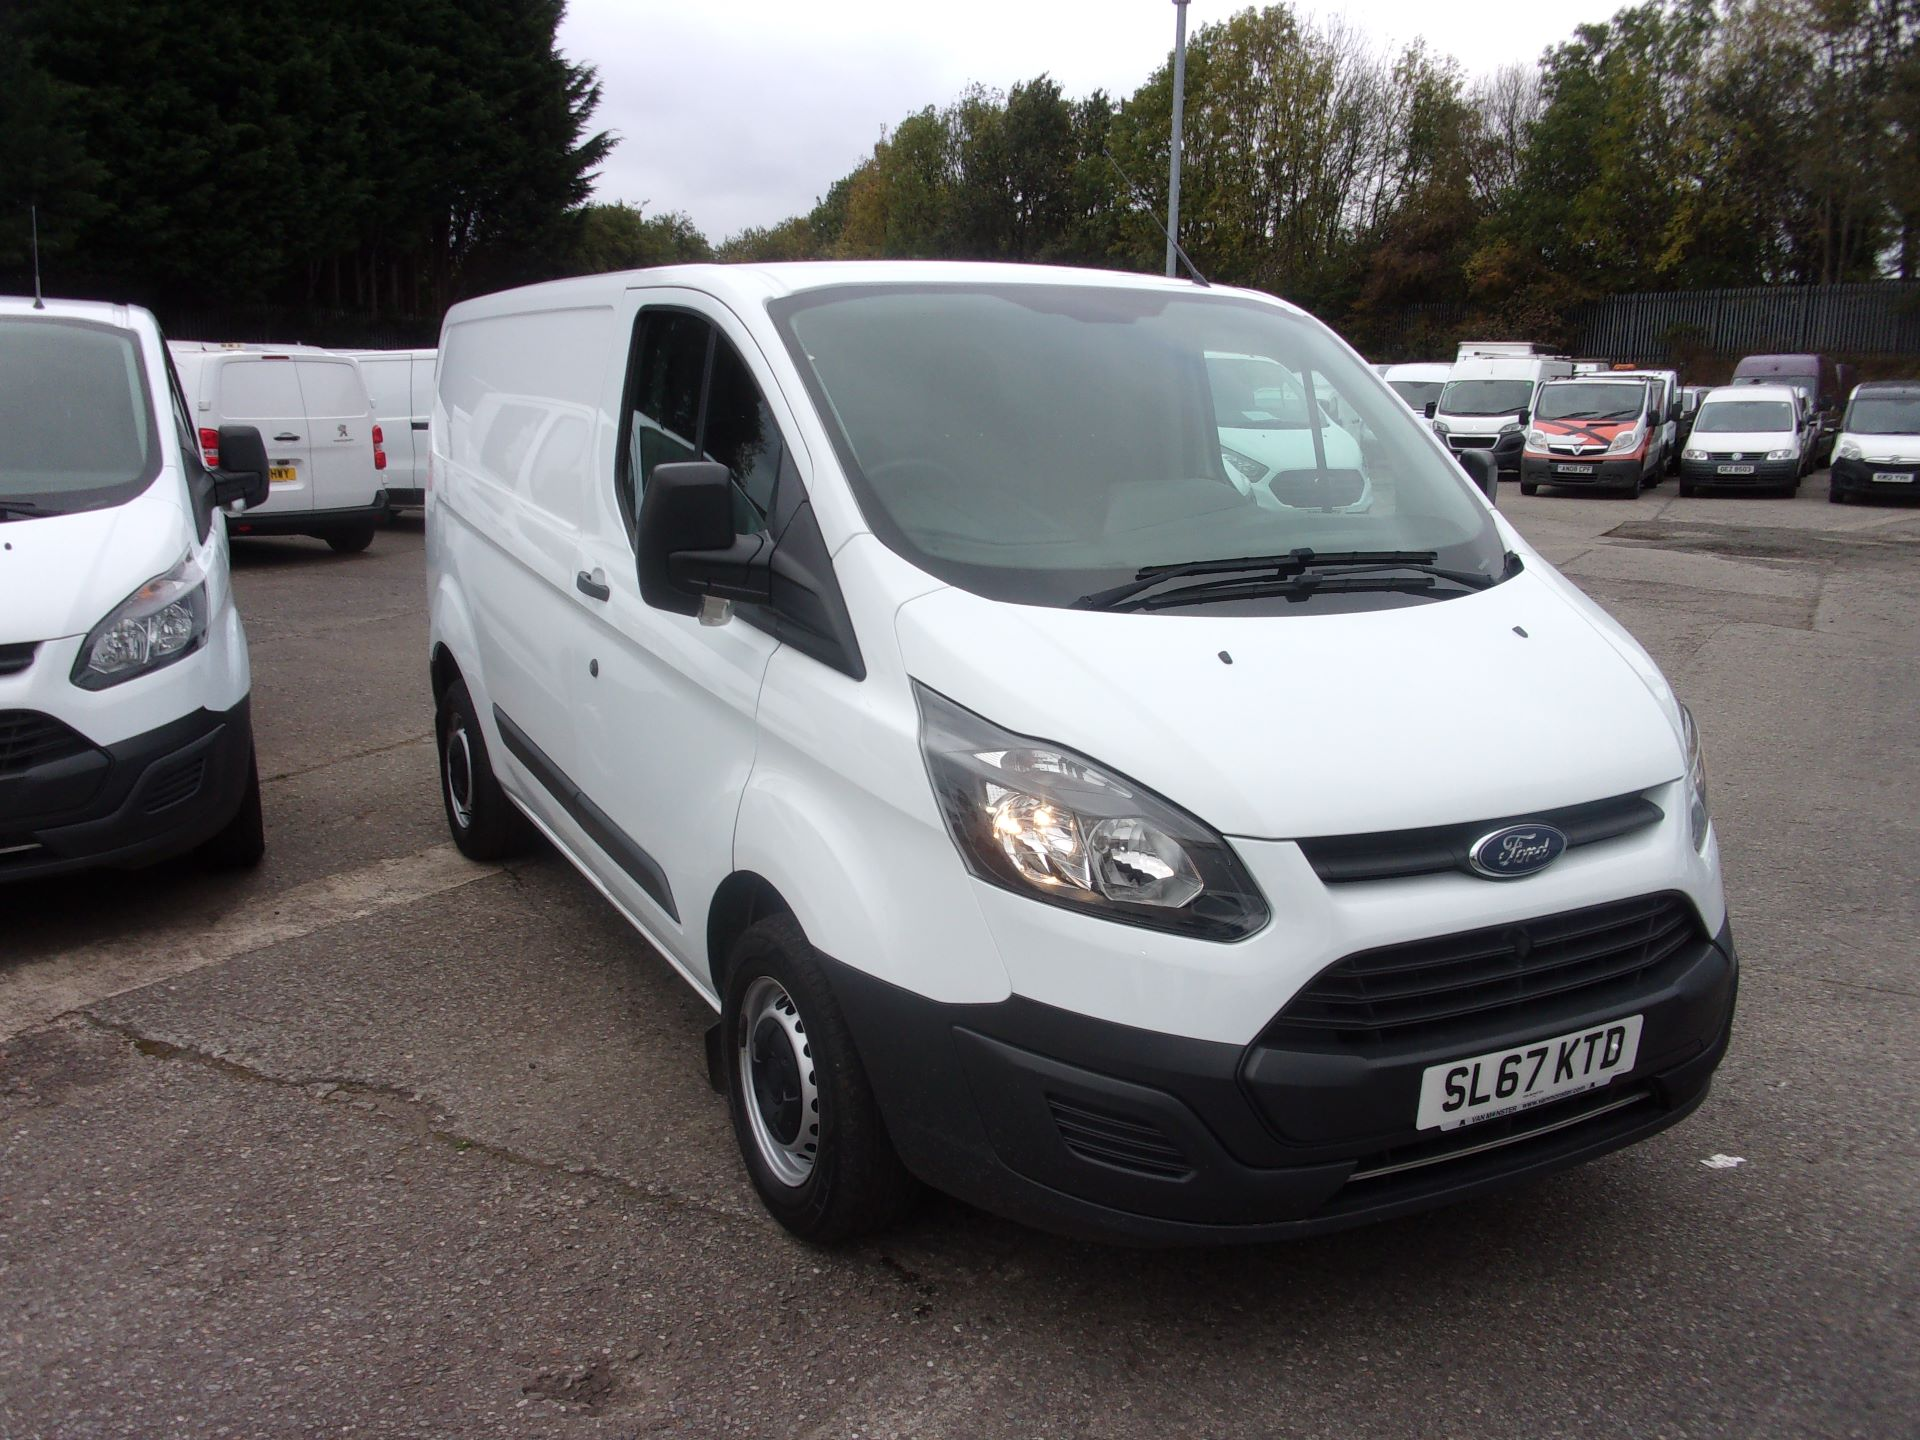 2017 Ford Transit Custom 270 L1 DIESEL FWD 2.0 TDCI 105PS LOW ROOF VAN EURO 6 (SL67KTD)